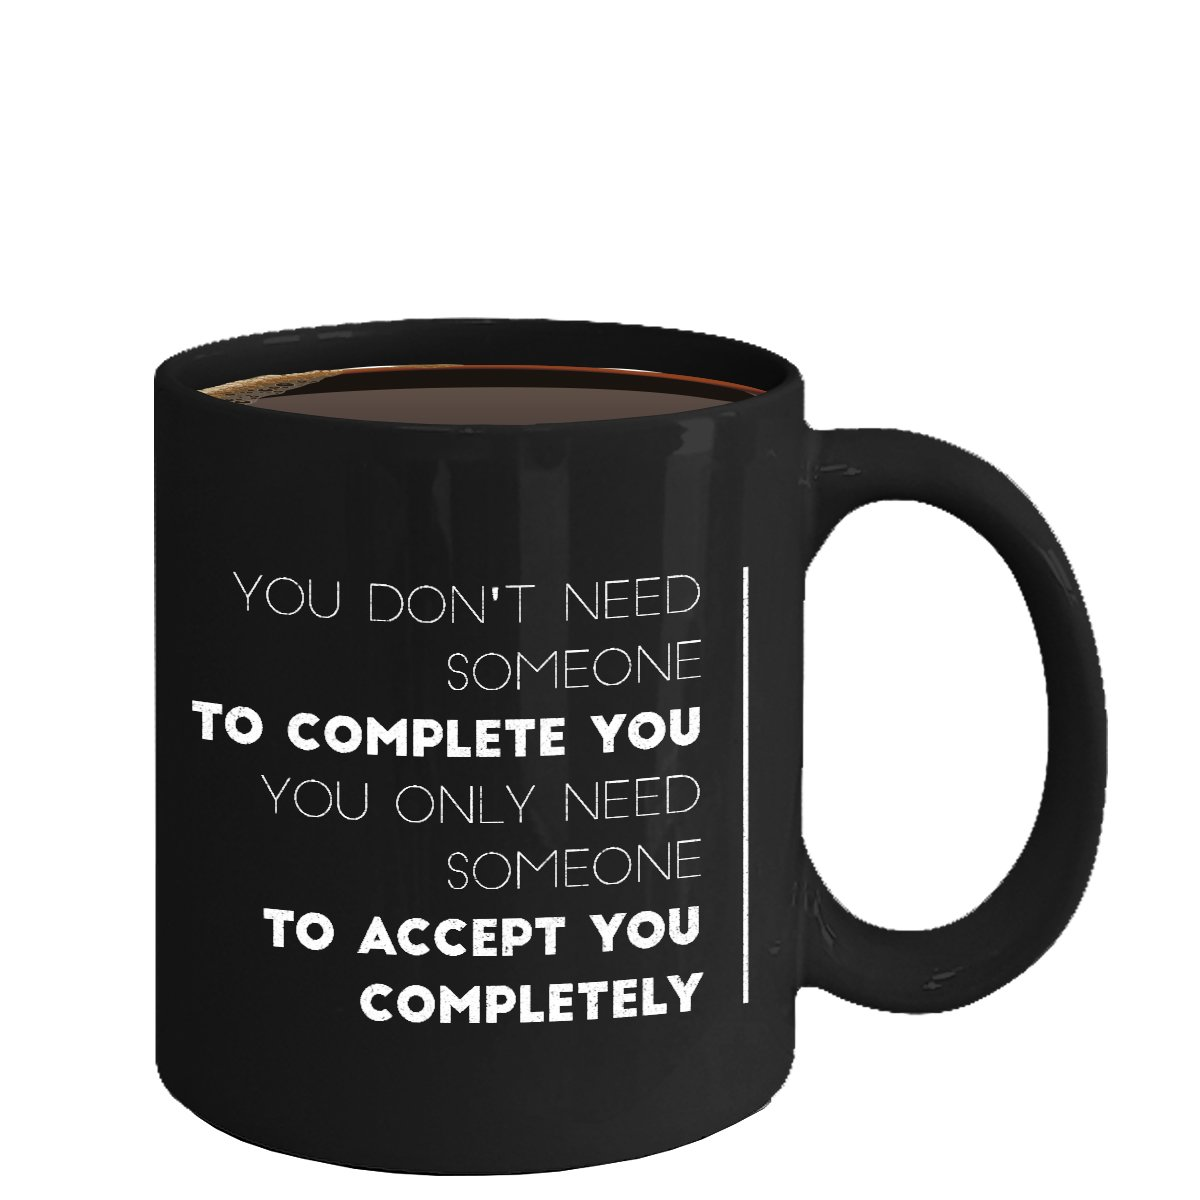 Love Ceramic Coffee Mug - Accept You Completely - Cute Large Cup (Black) - Best Gift for Men, Women